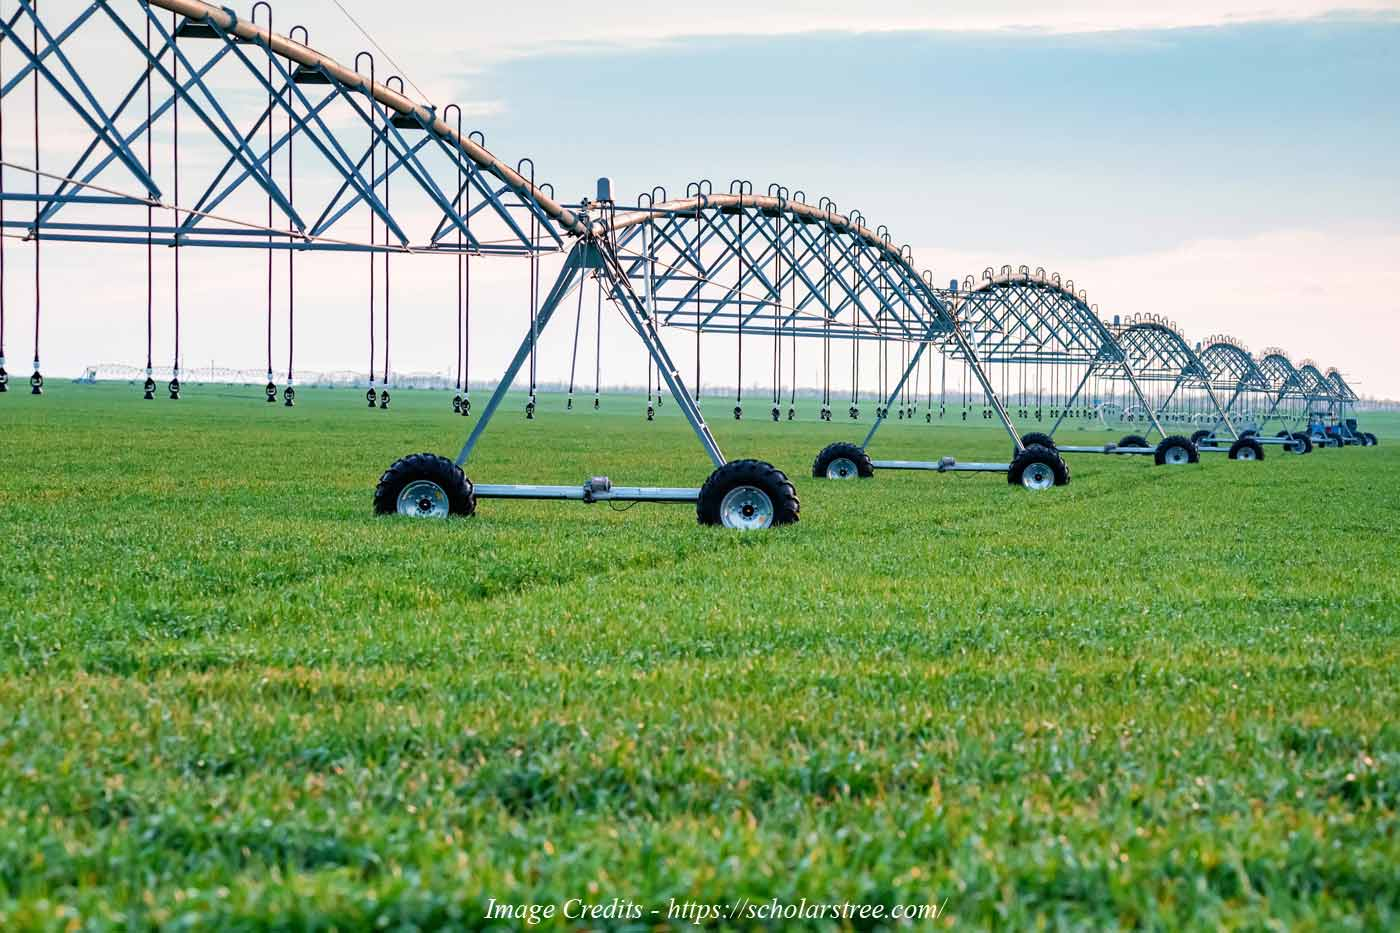 Future of Agriculture – New Trends in Agriculture 2021